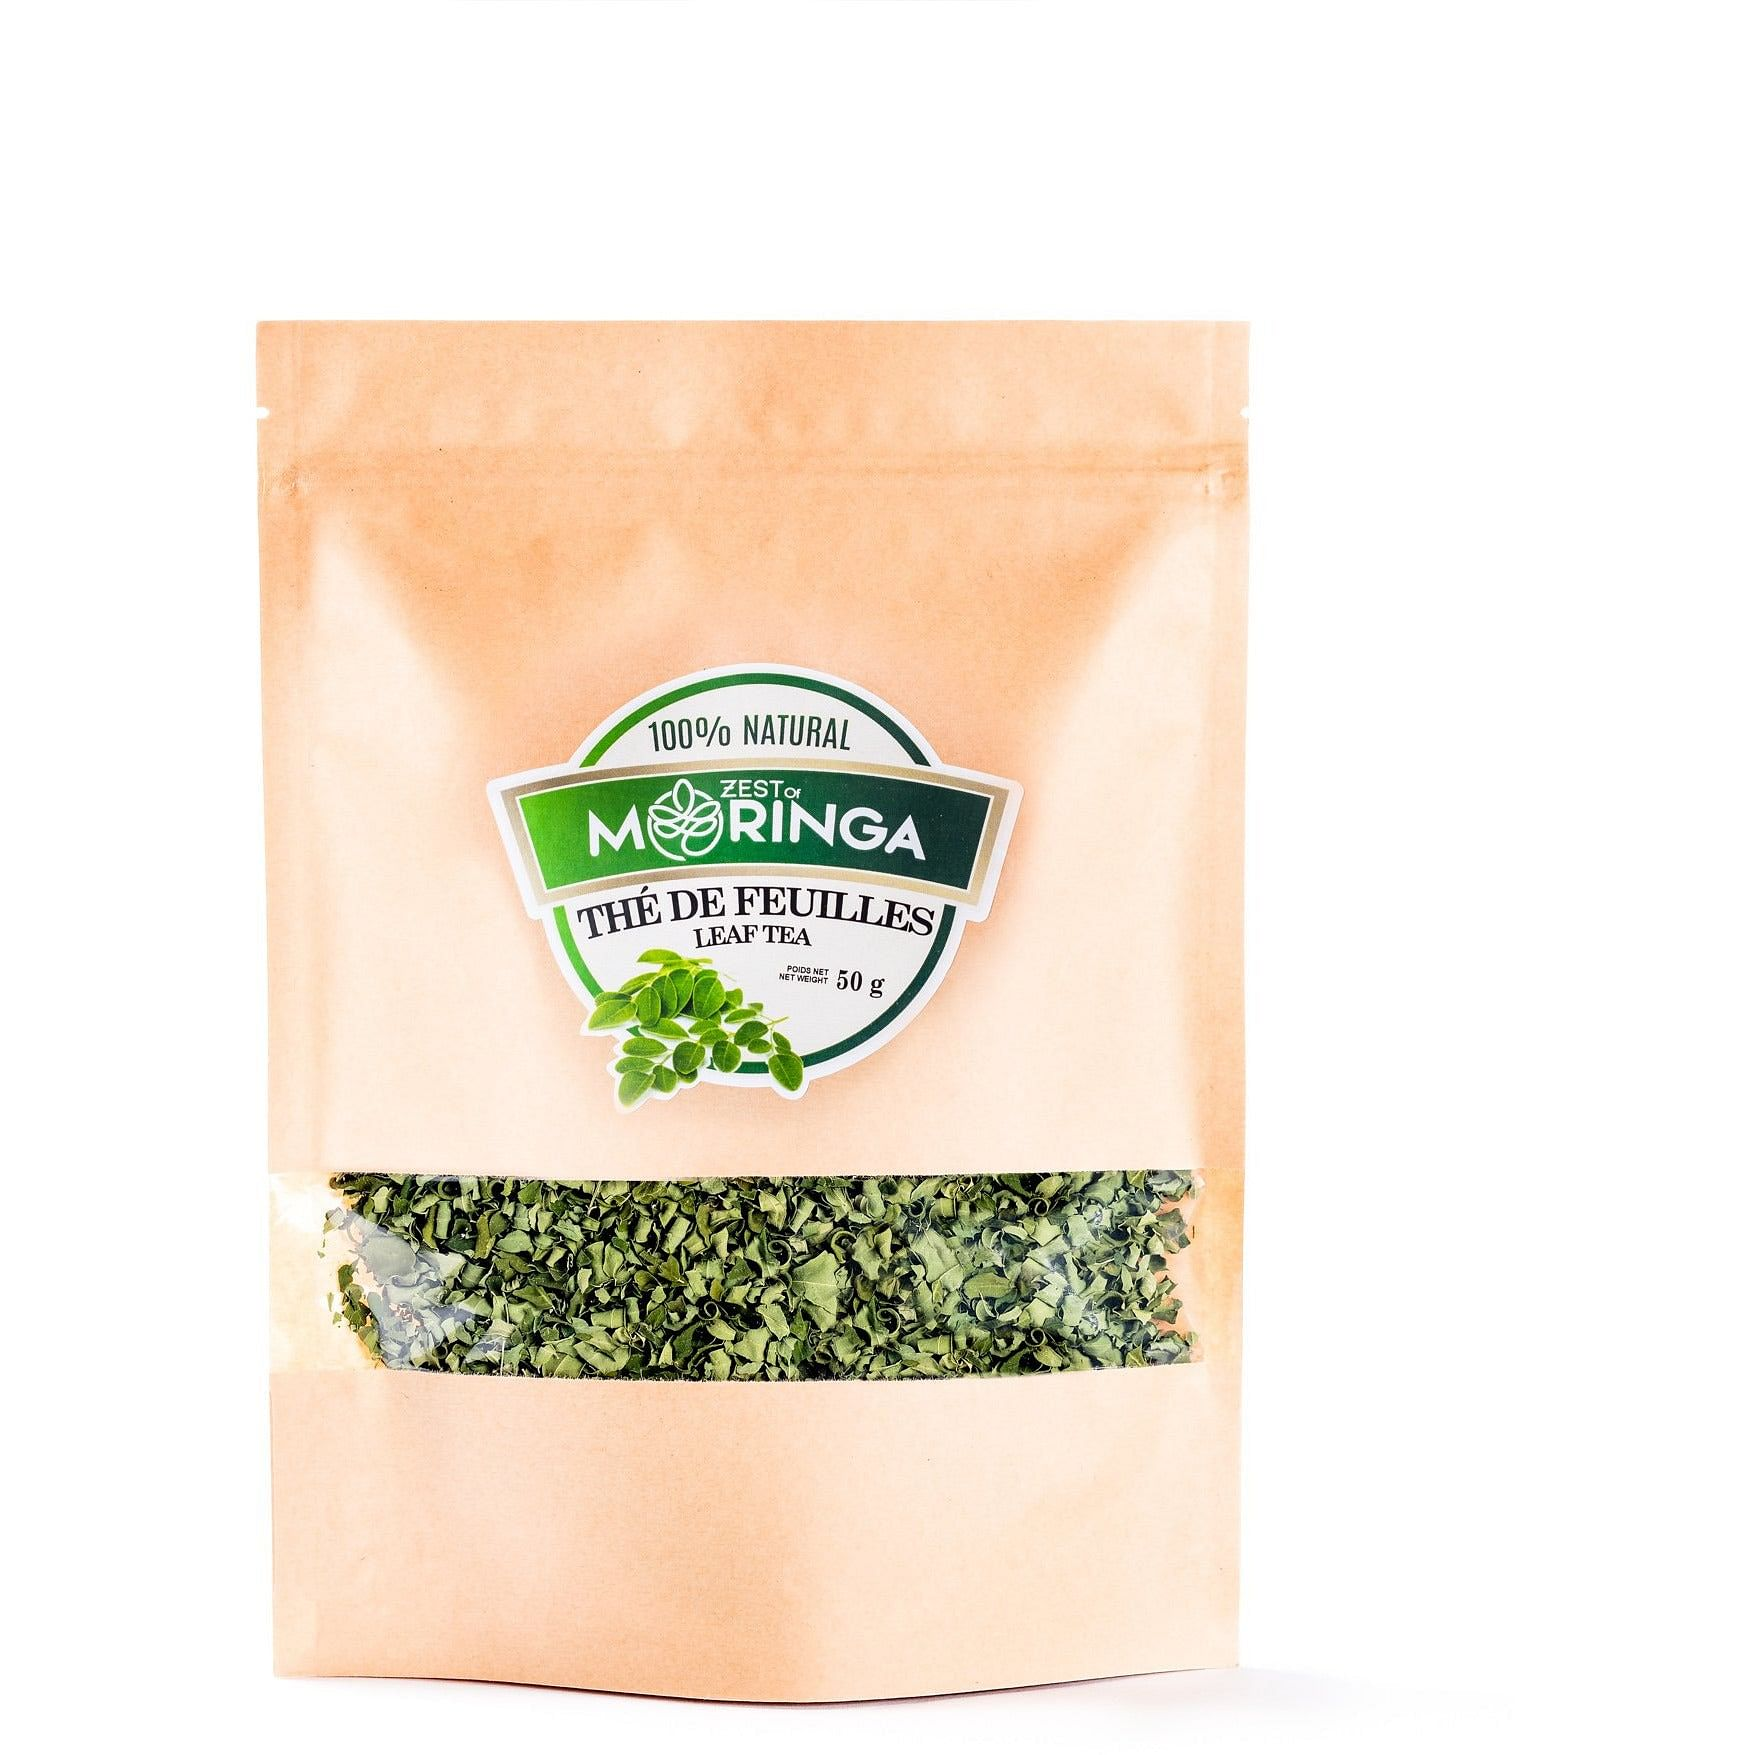 moringa leaf tea bulk bag